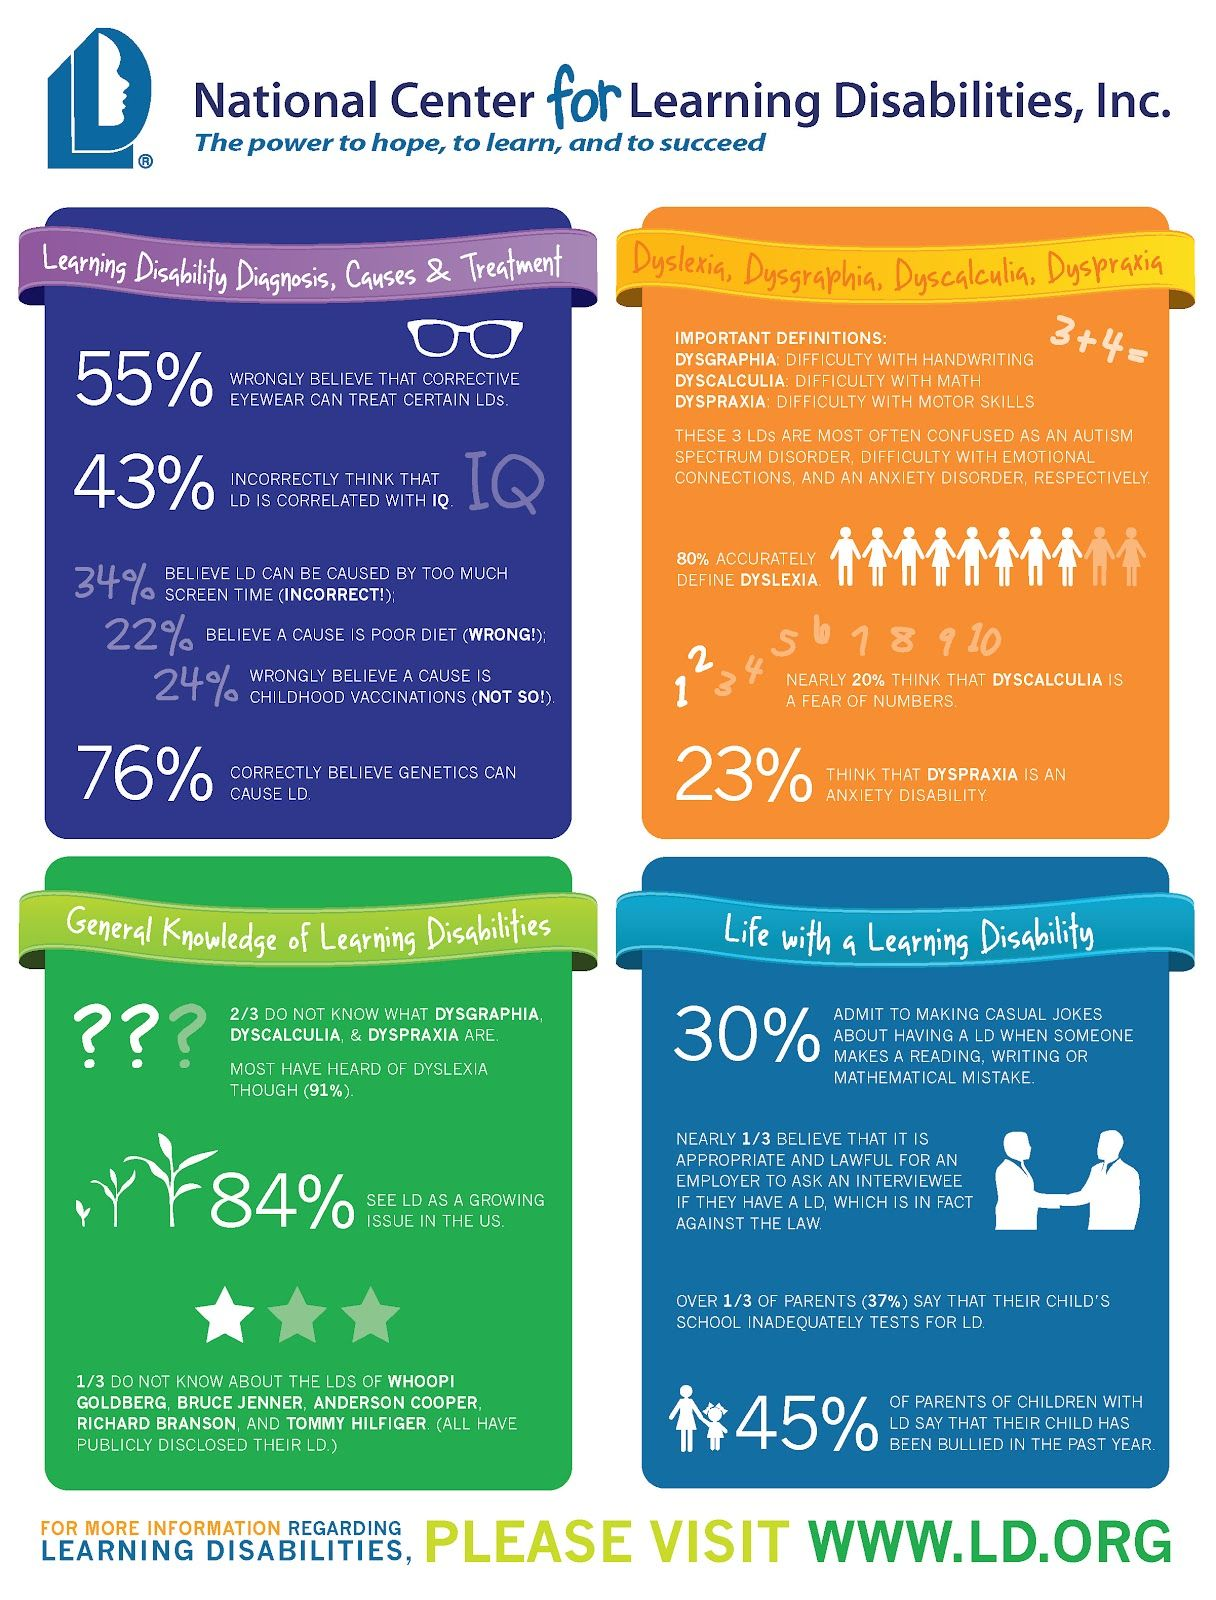 Surprising Survey Results on Learning Disabilities Awareness